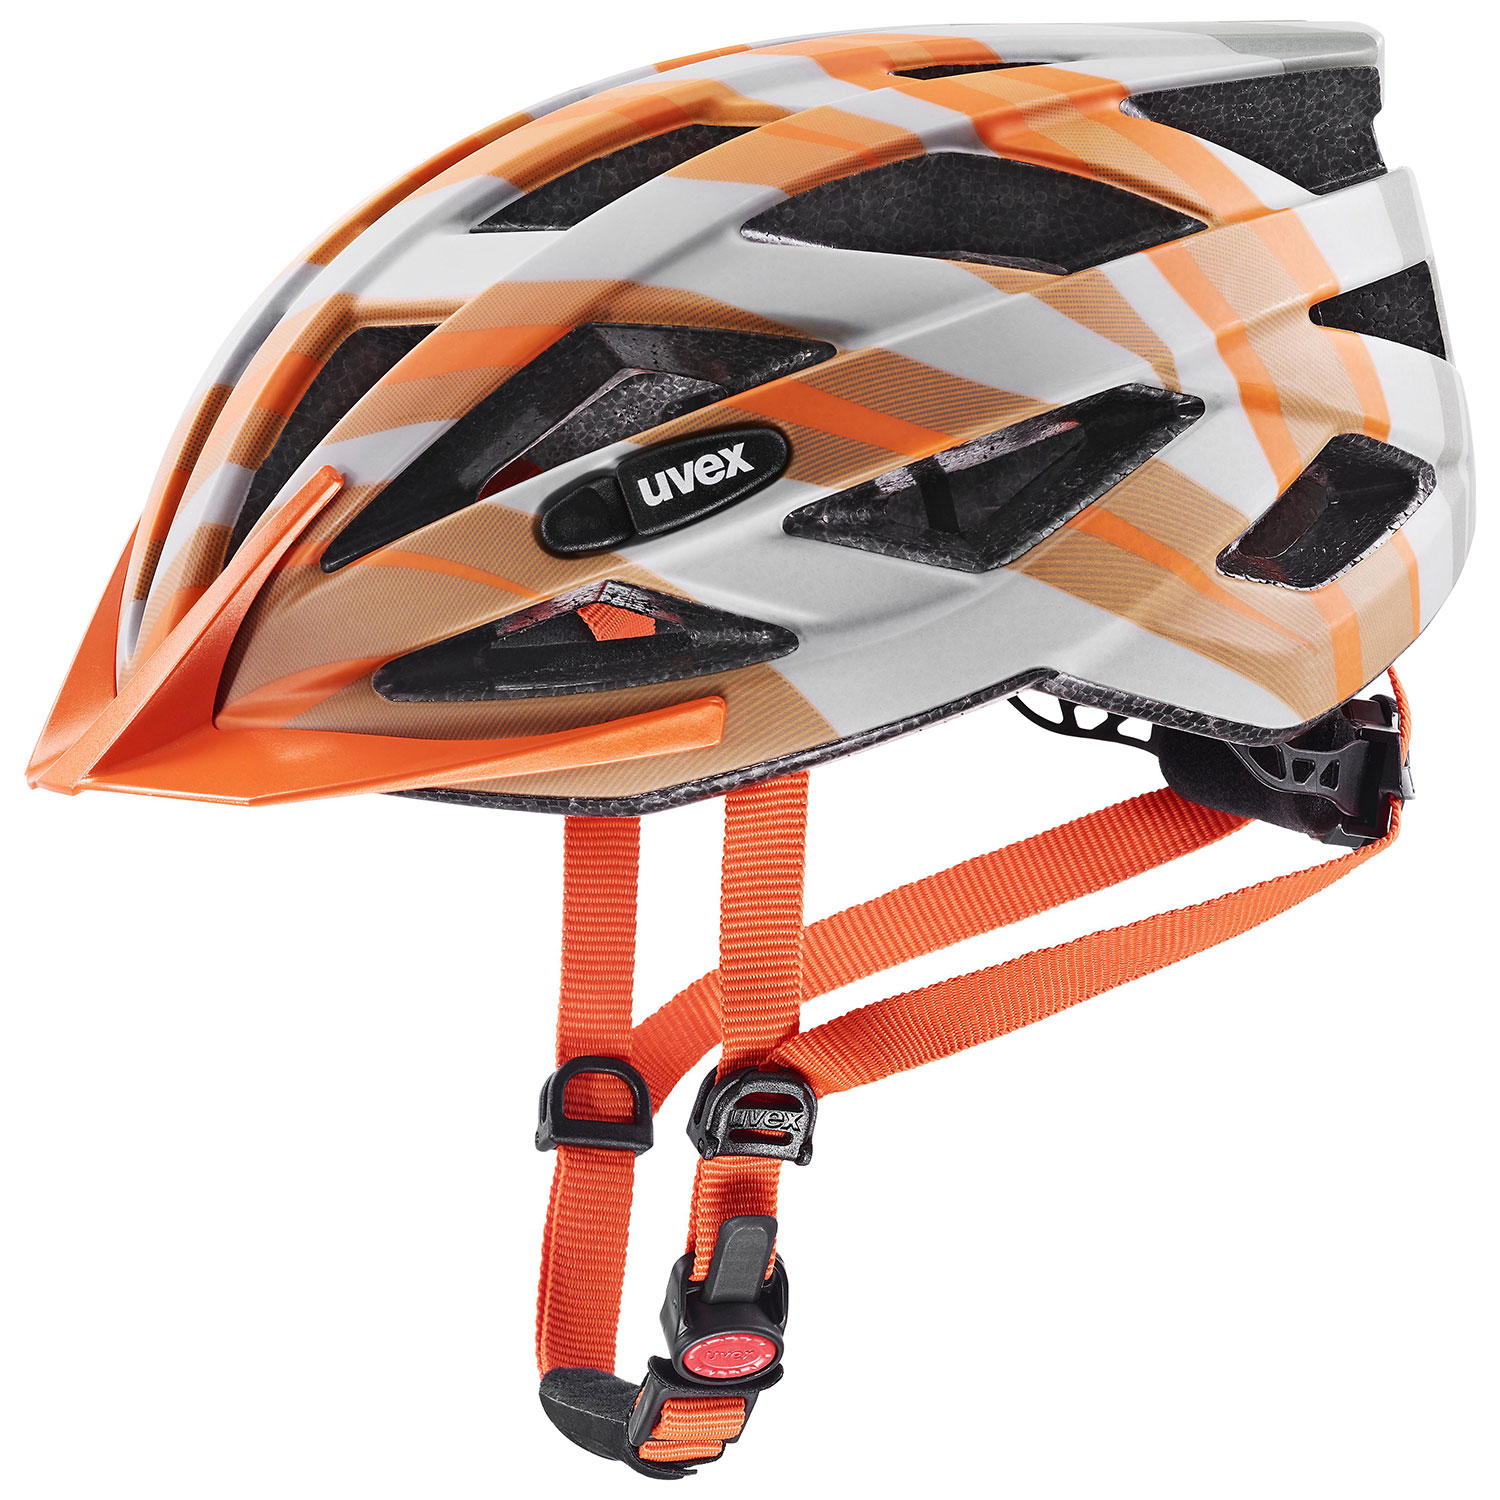 2021 UVEX HELMA AIR WING CC, GREY - ORANGE MAT 56-60